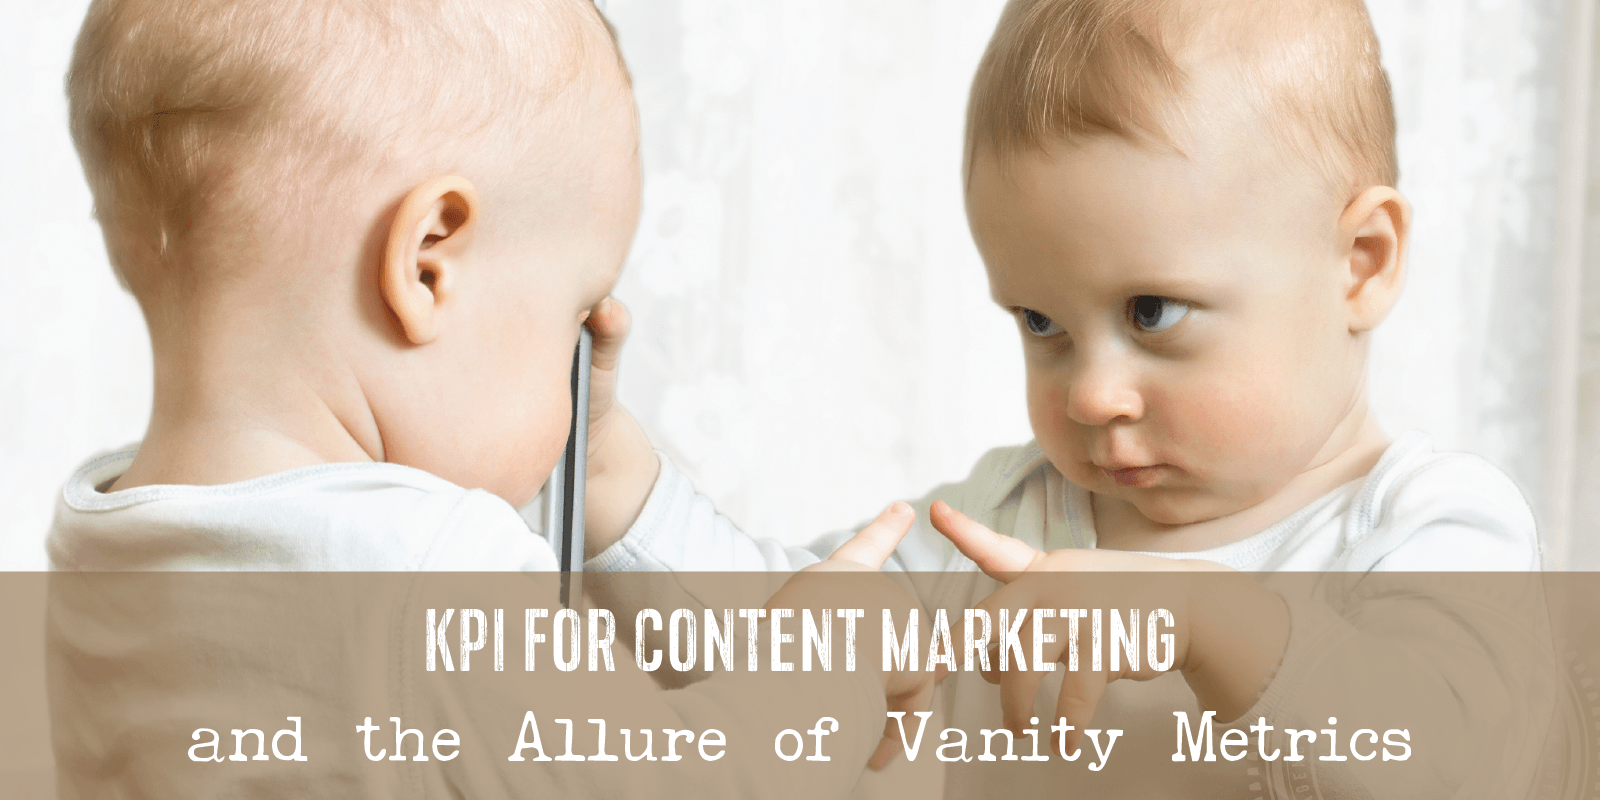 KPIs for Content Marketing